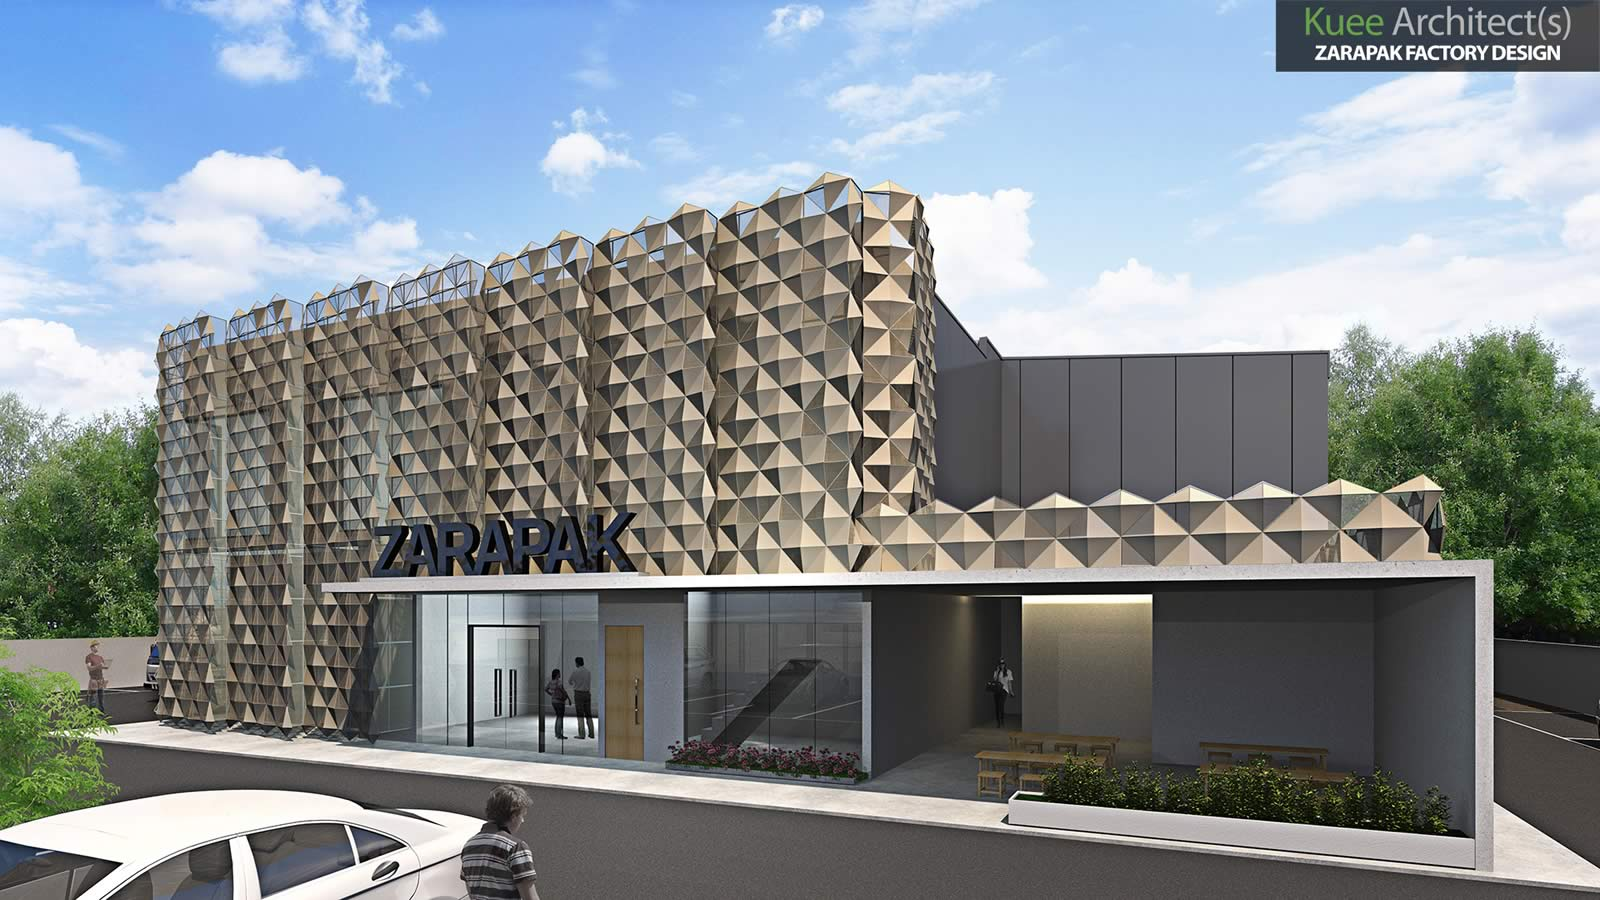 Zarapak Factory Architecture Design by Kuee Architect